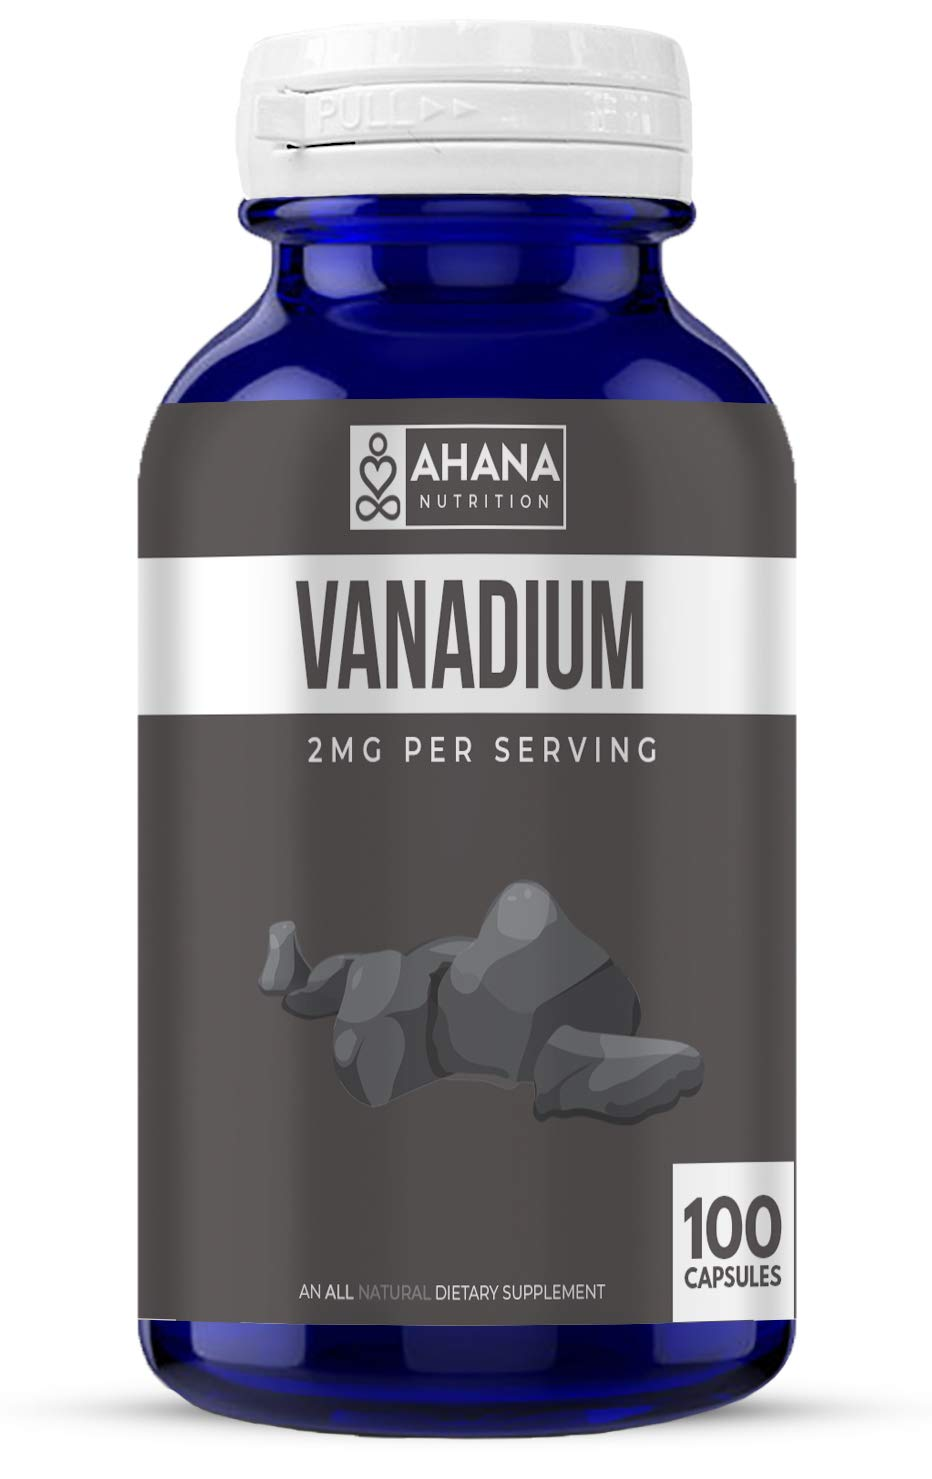 Vanadium Capsules by Ahana Nutrition – Vanadium Supplement to Help Support Blood Sugar Levels, Heart Health and Helps Maintain Healthy Blood Pressure* (2mg - 100 Capsules)